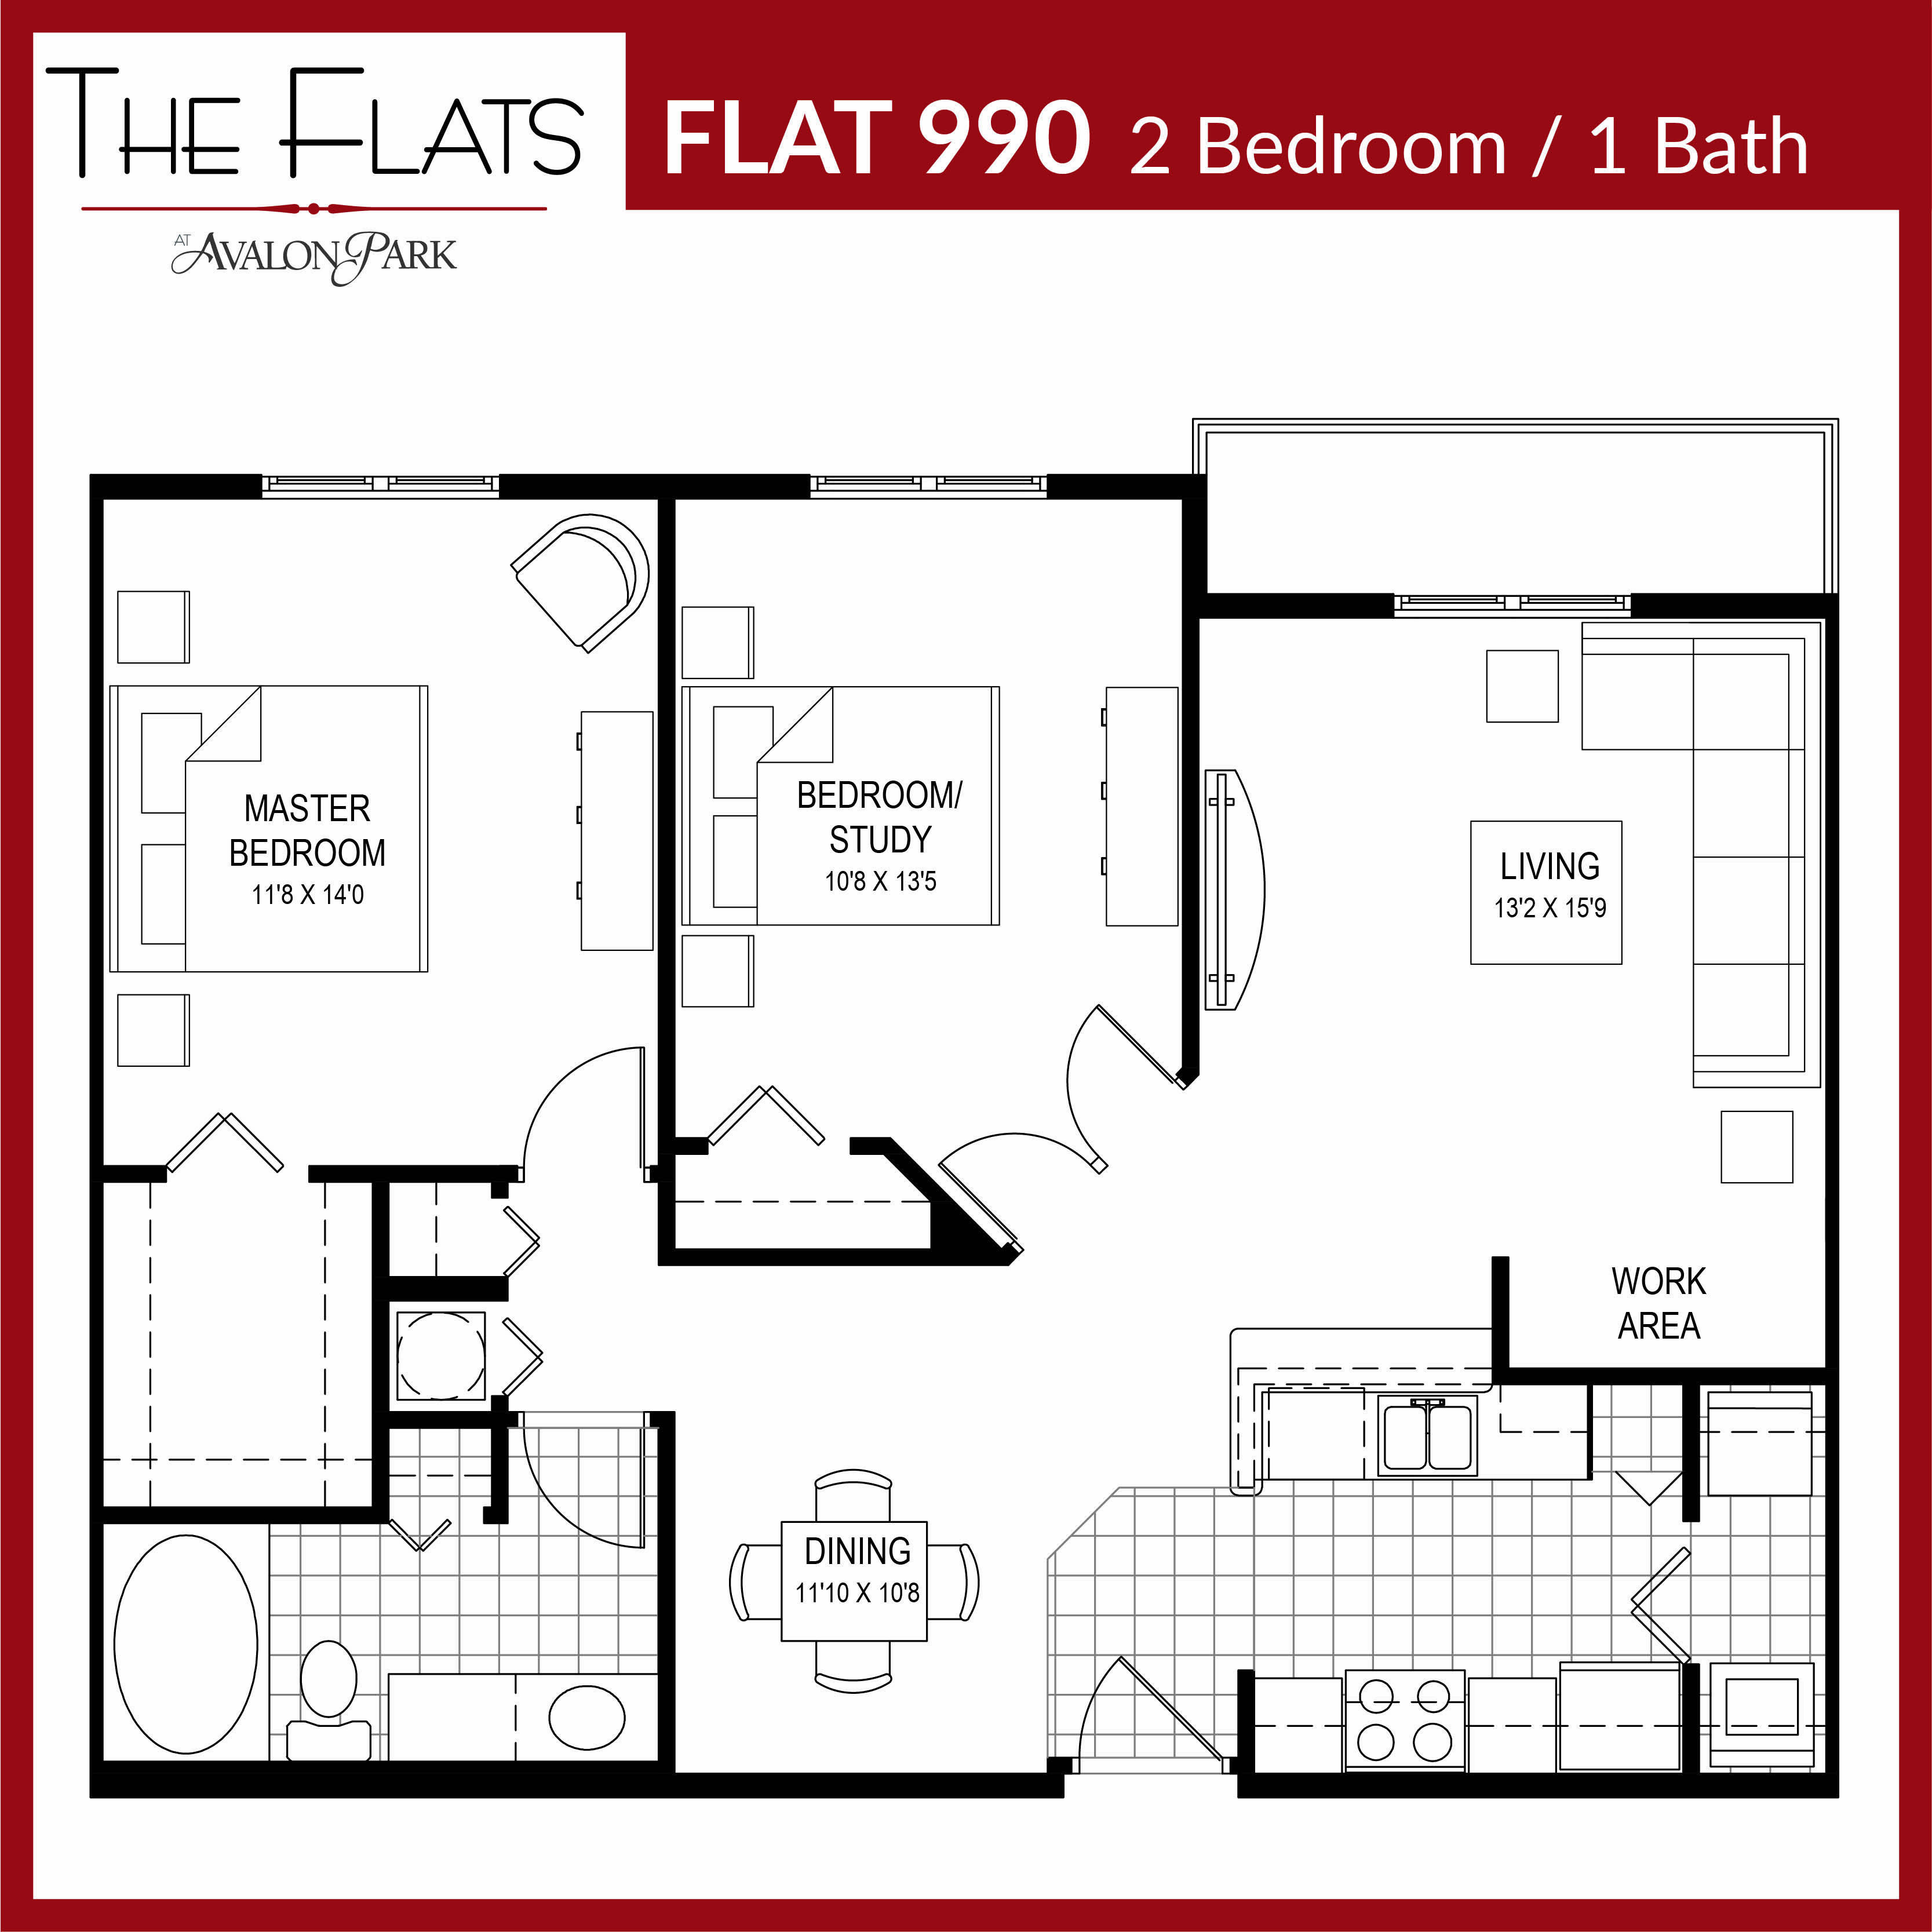 Big 1 Bedroom Apartment This Large 1 Bedroom Apartment Has Recently Undergone Redecoration Work A One Bedroom House 1 Bedroom House Plans Bedroom Floor Plans